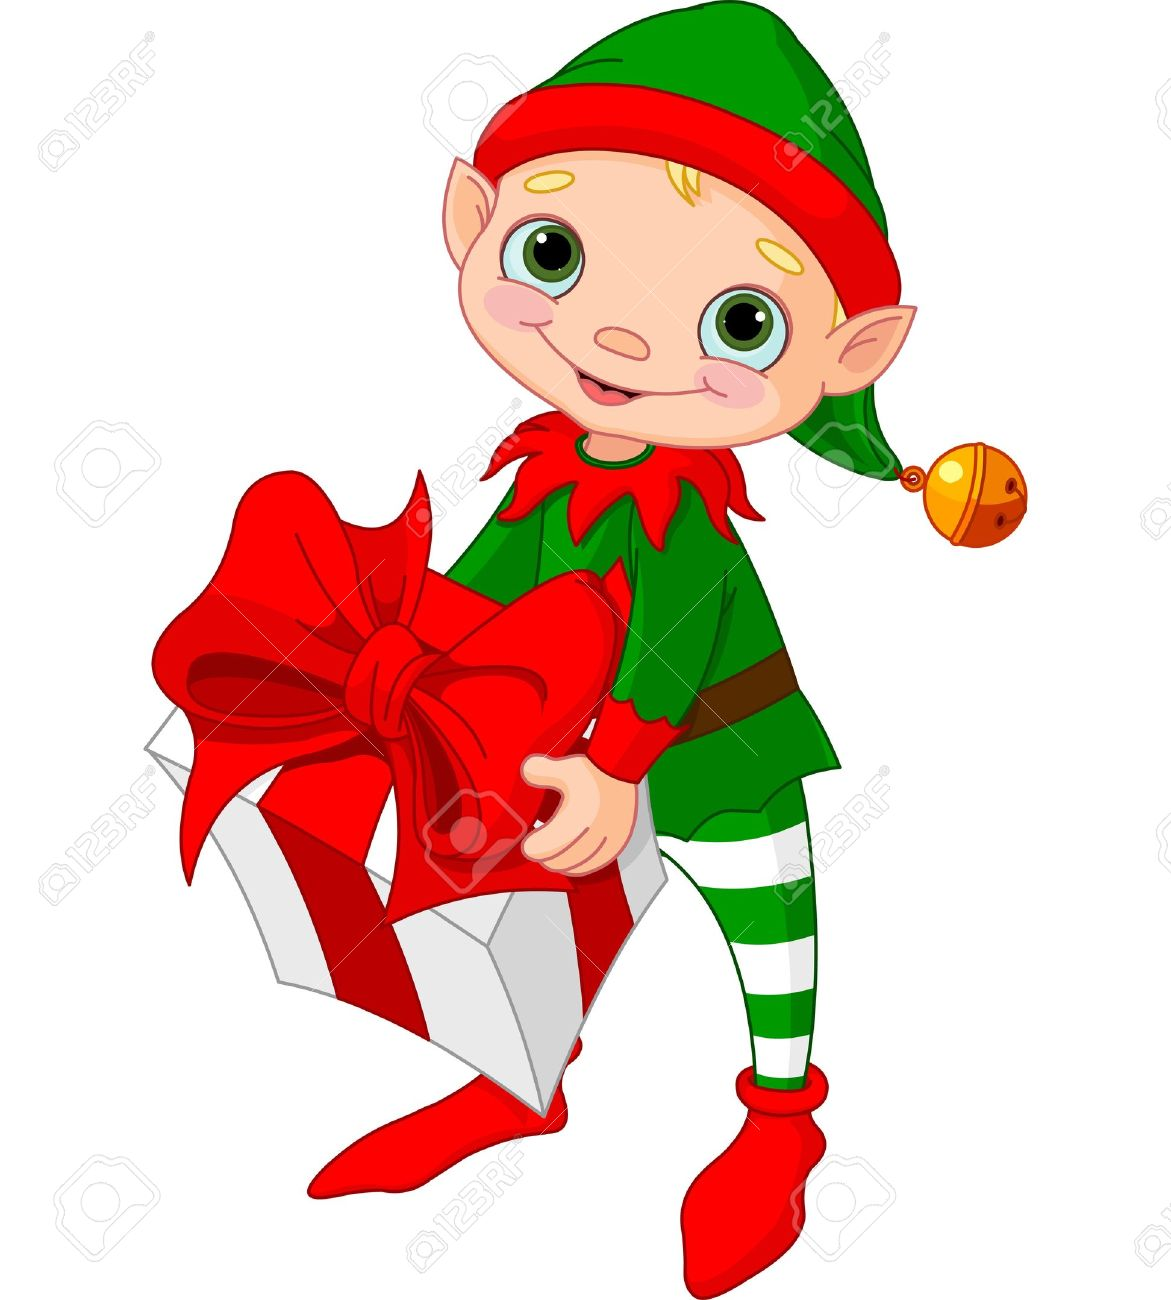 Cartoon Elf Stock Photos Images. Royalty Free Cartoon Elf Images.